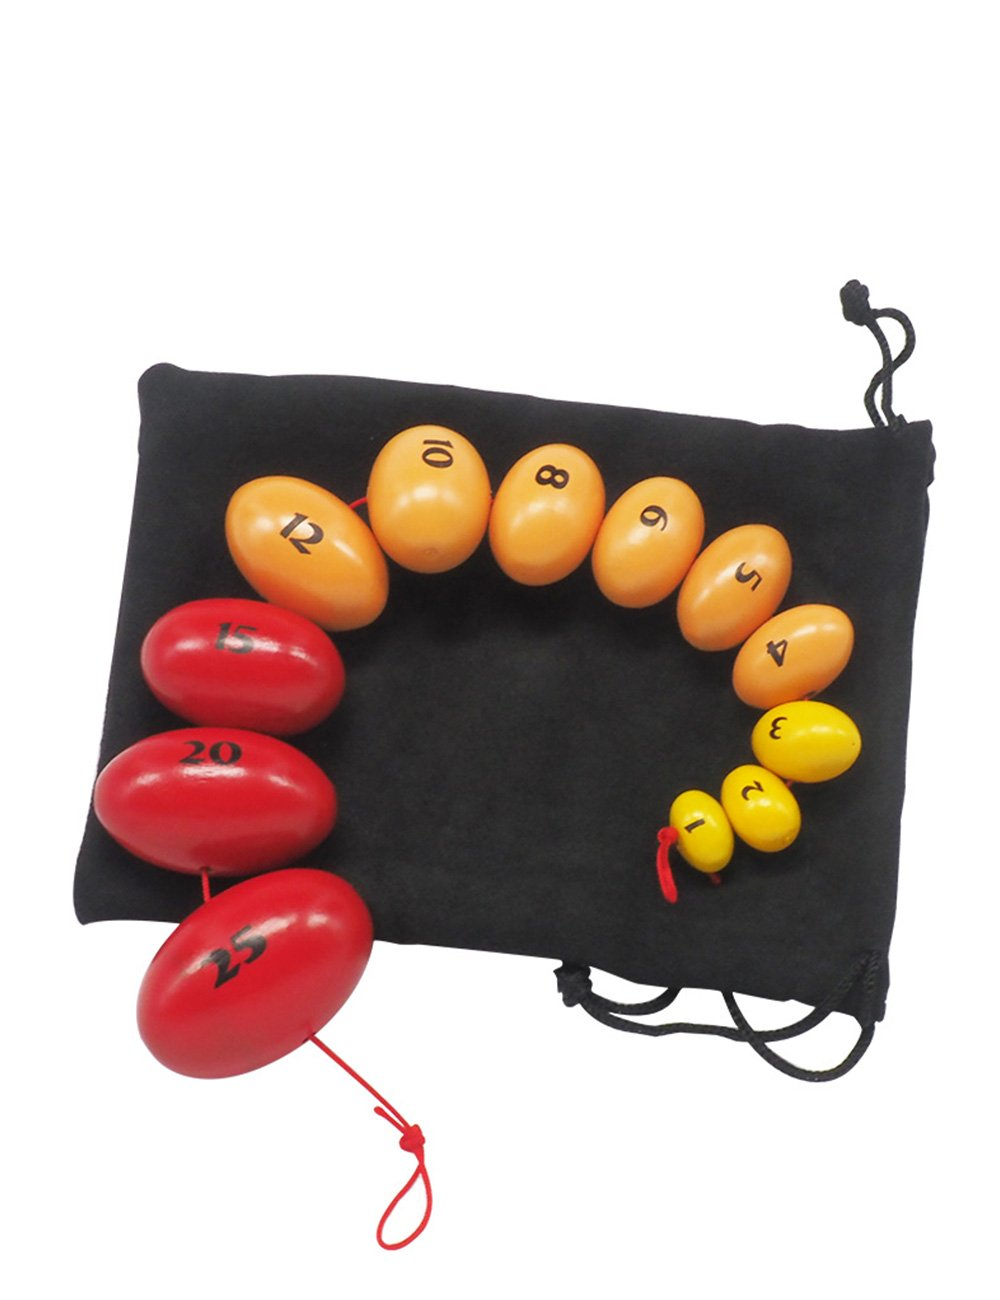 Wooden Prader Orchidometer, Prader Balls, Endocrine Rosary for Measuring Testis Scale in Clinic/Hospital, Best Gift for Endocrinologist and Pediatrician (A) by Mediarchitect